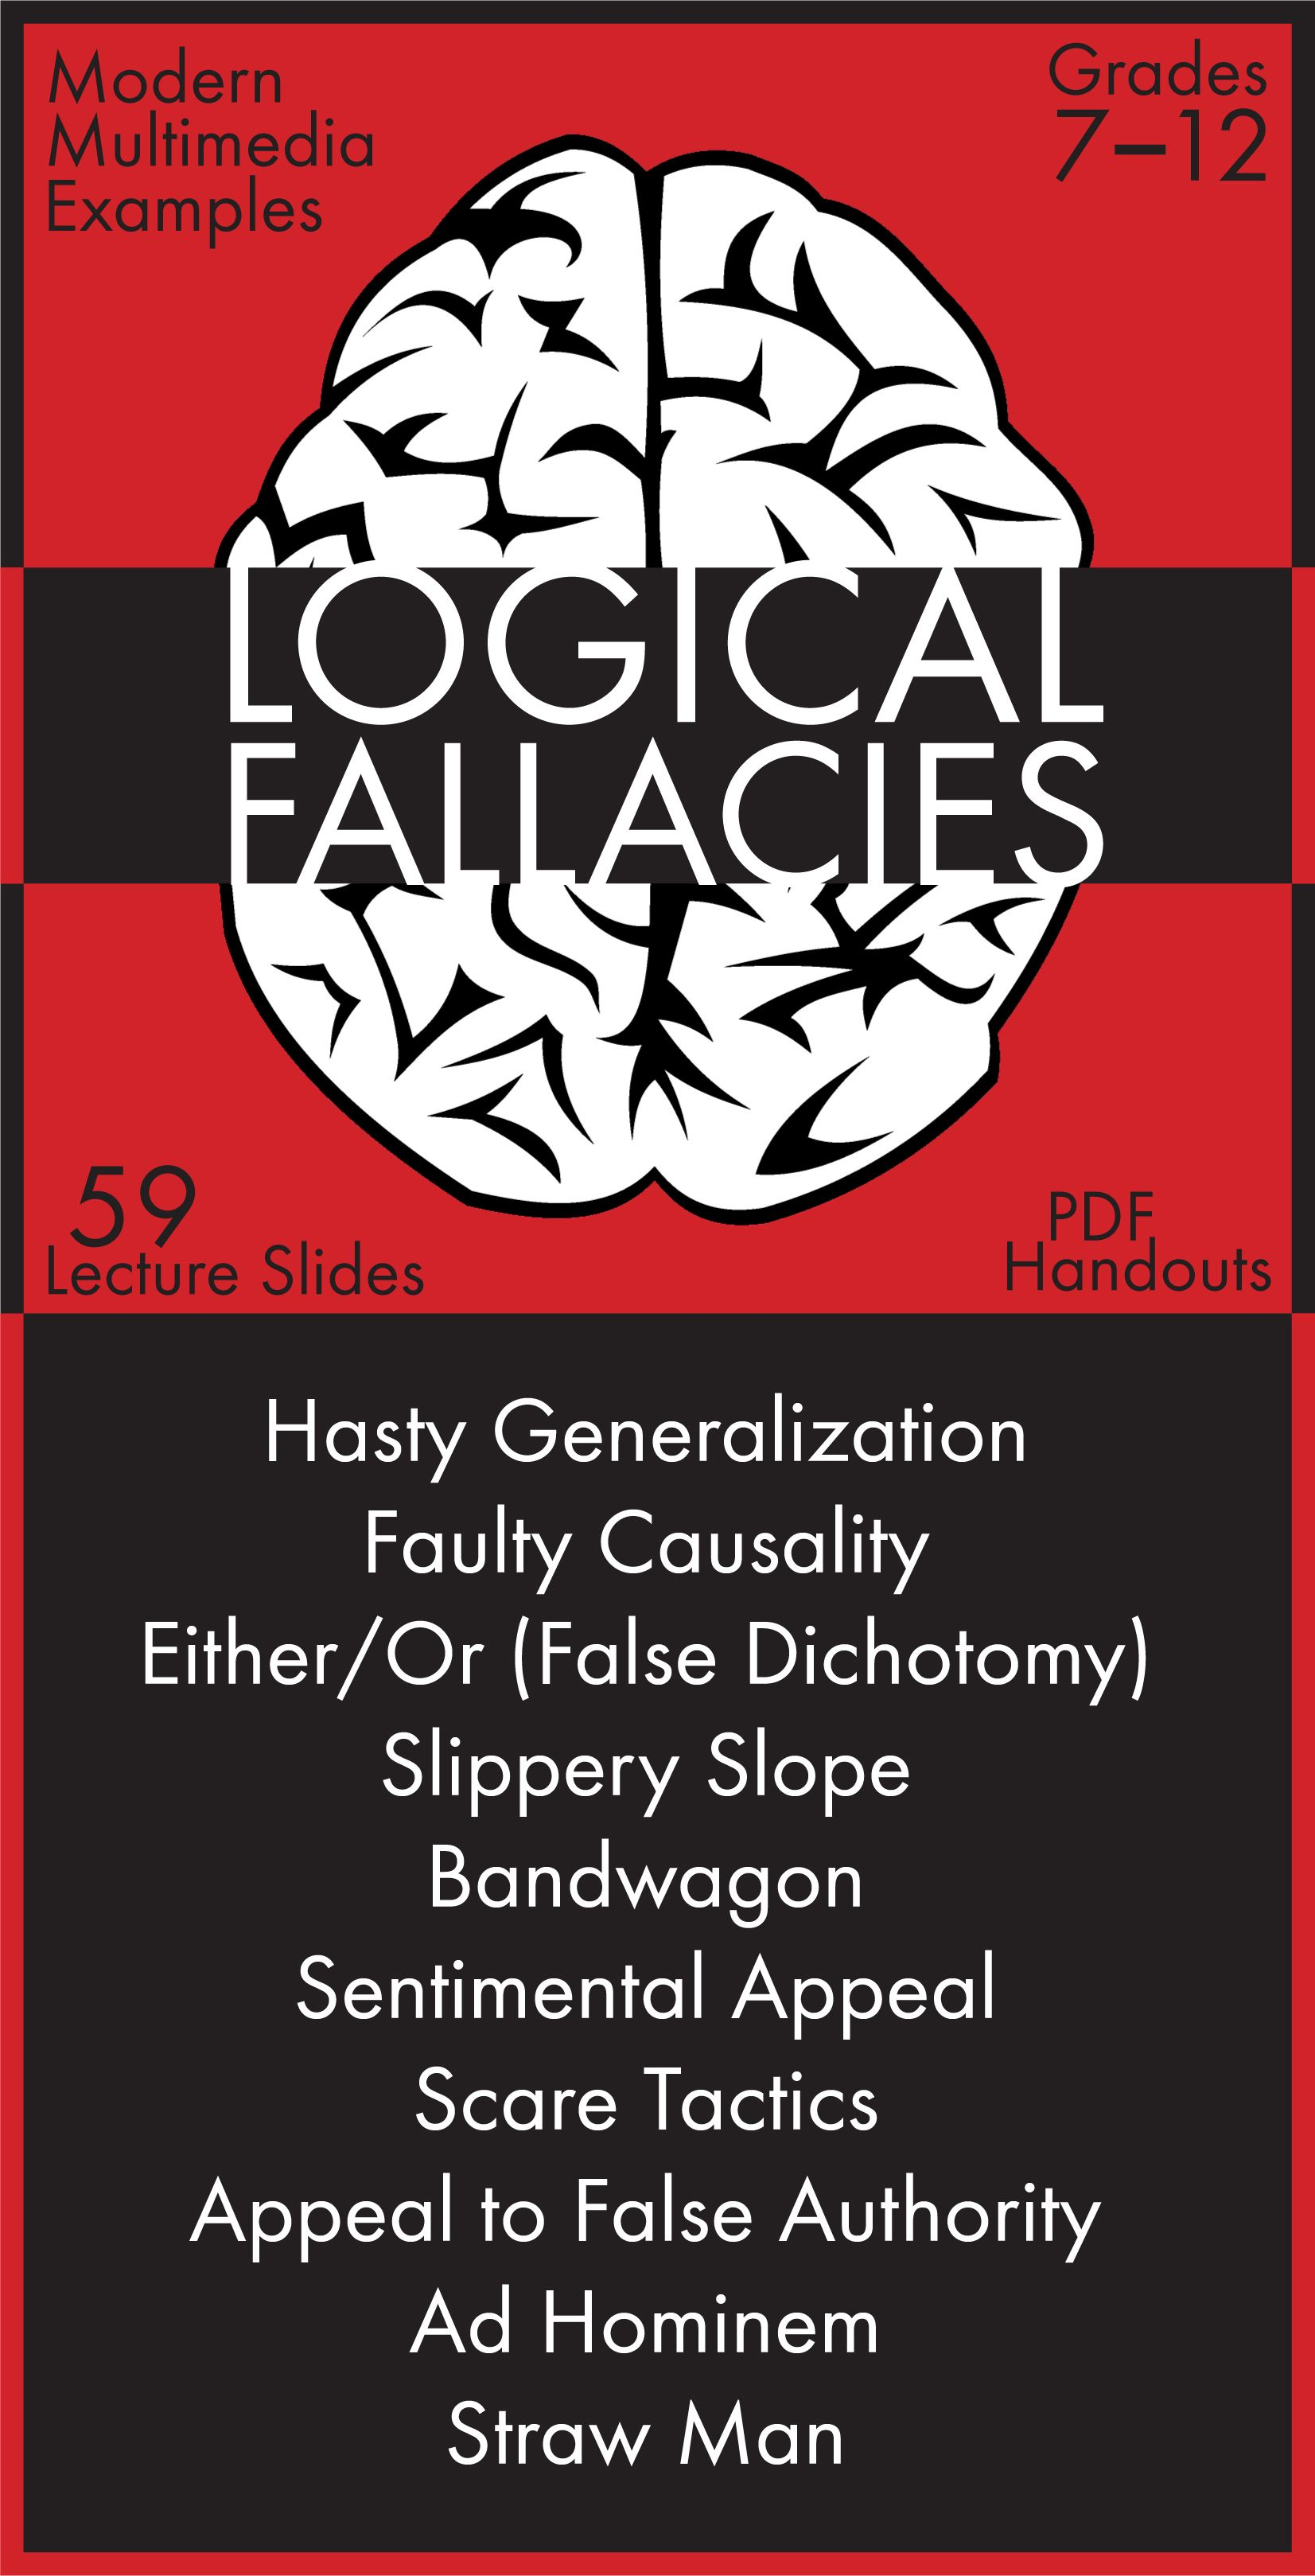 a critique of the fallacies and logic presented in the politics of the english language an essay by  Logic & fallacies constructing a logical argument (1997)  the concise oxford english dictionary defines logic as the science of reasoning, proof, thinking, or .